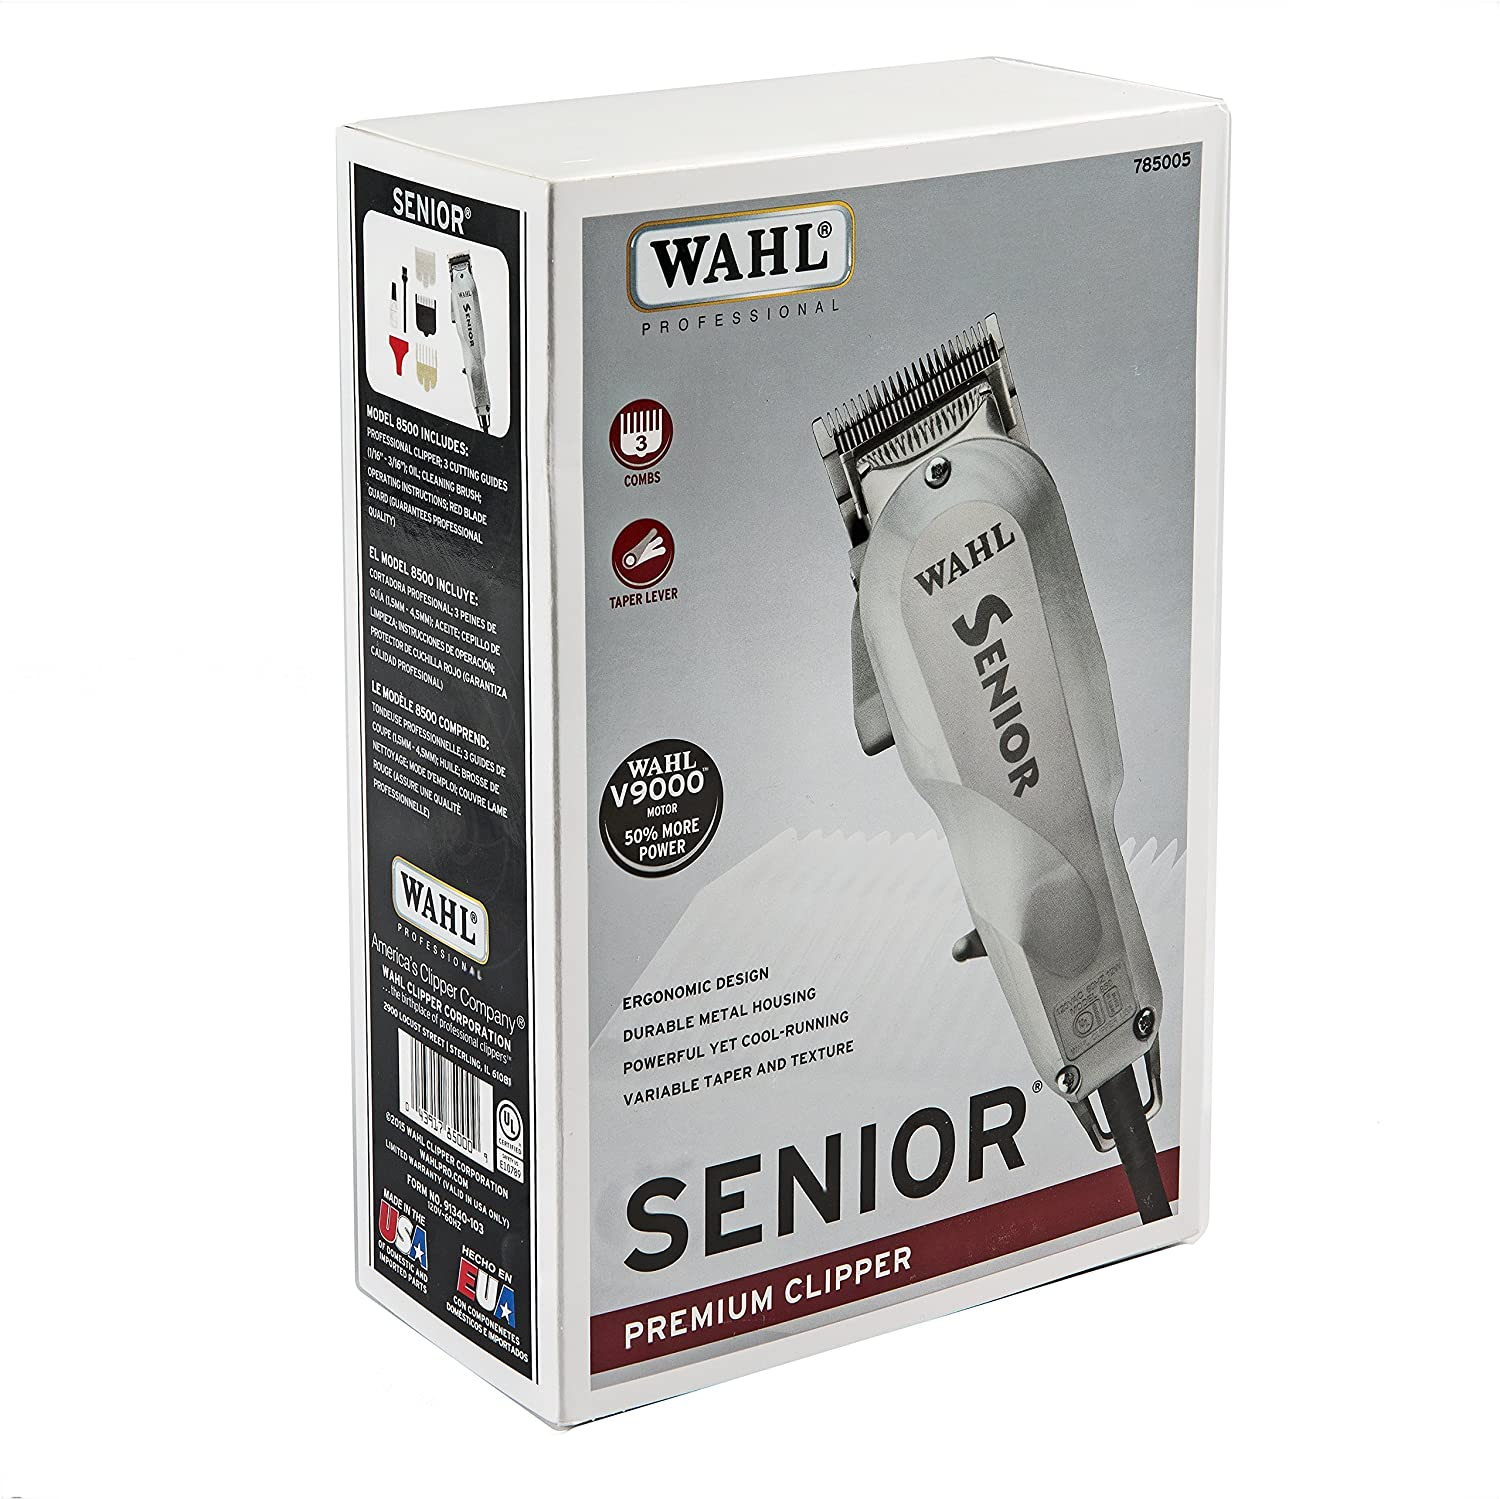 Wahl 8500 Professional Senior Premium Clipper